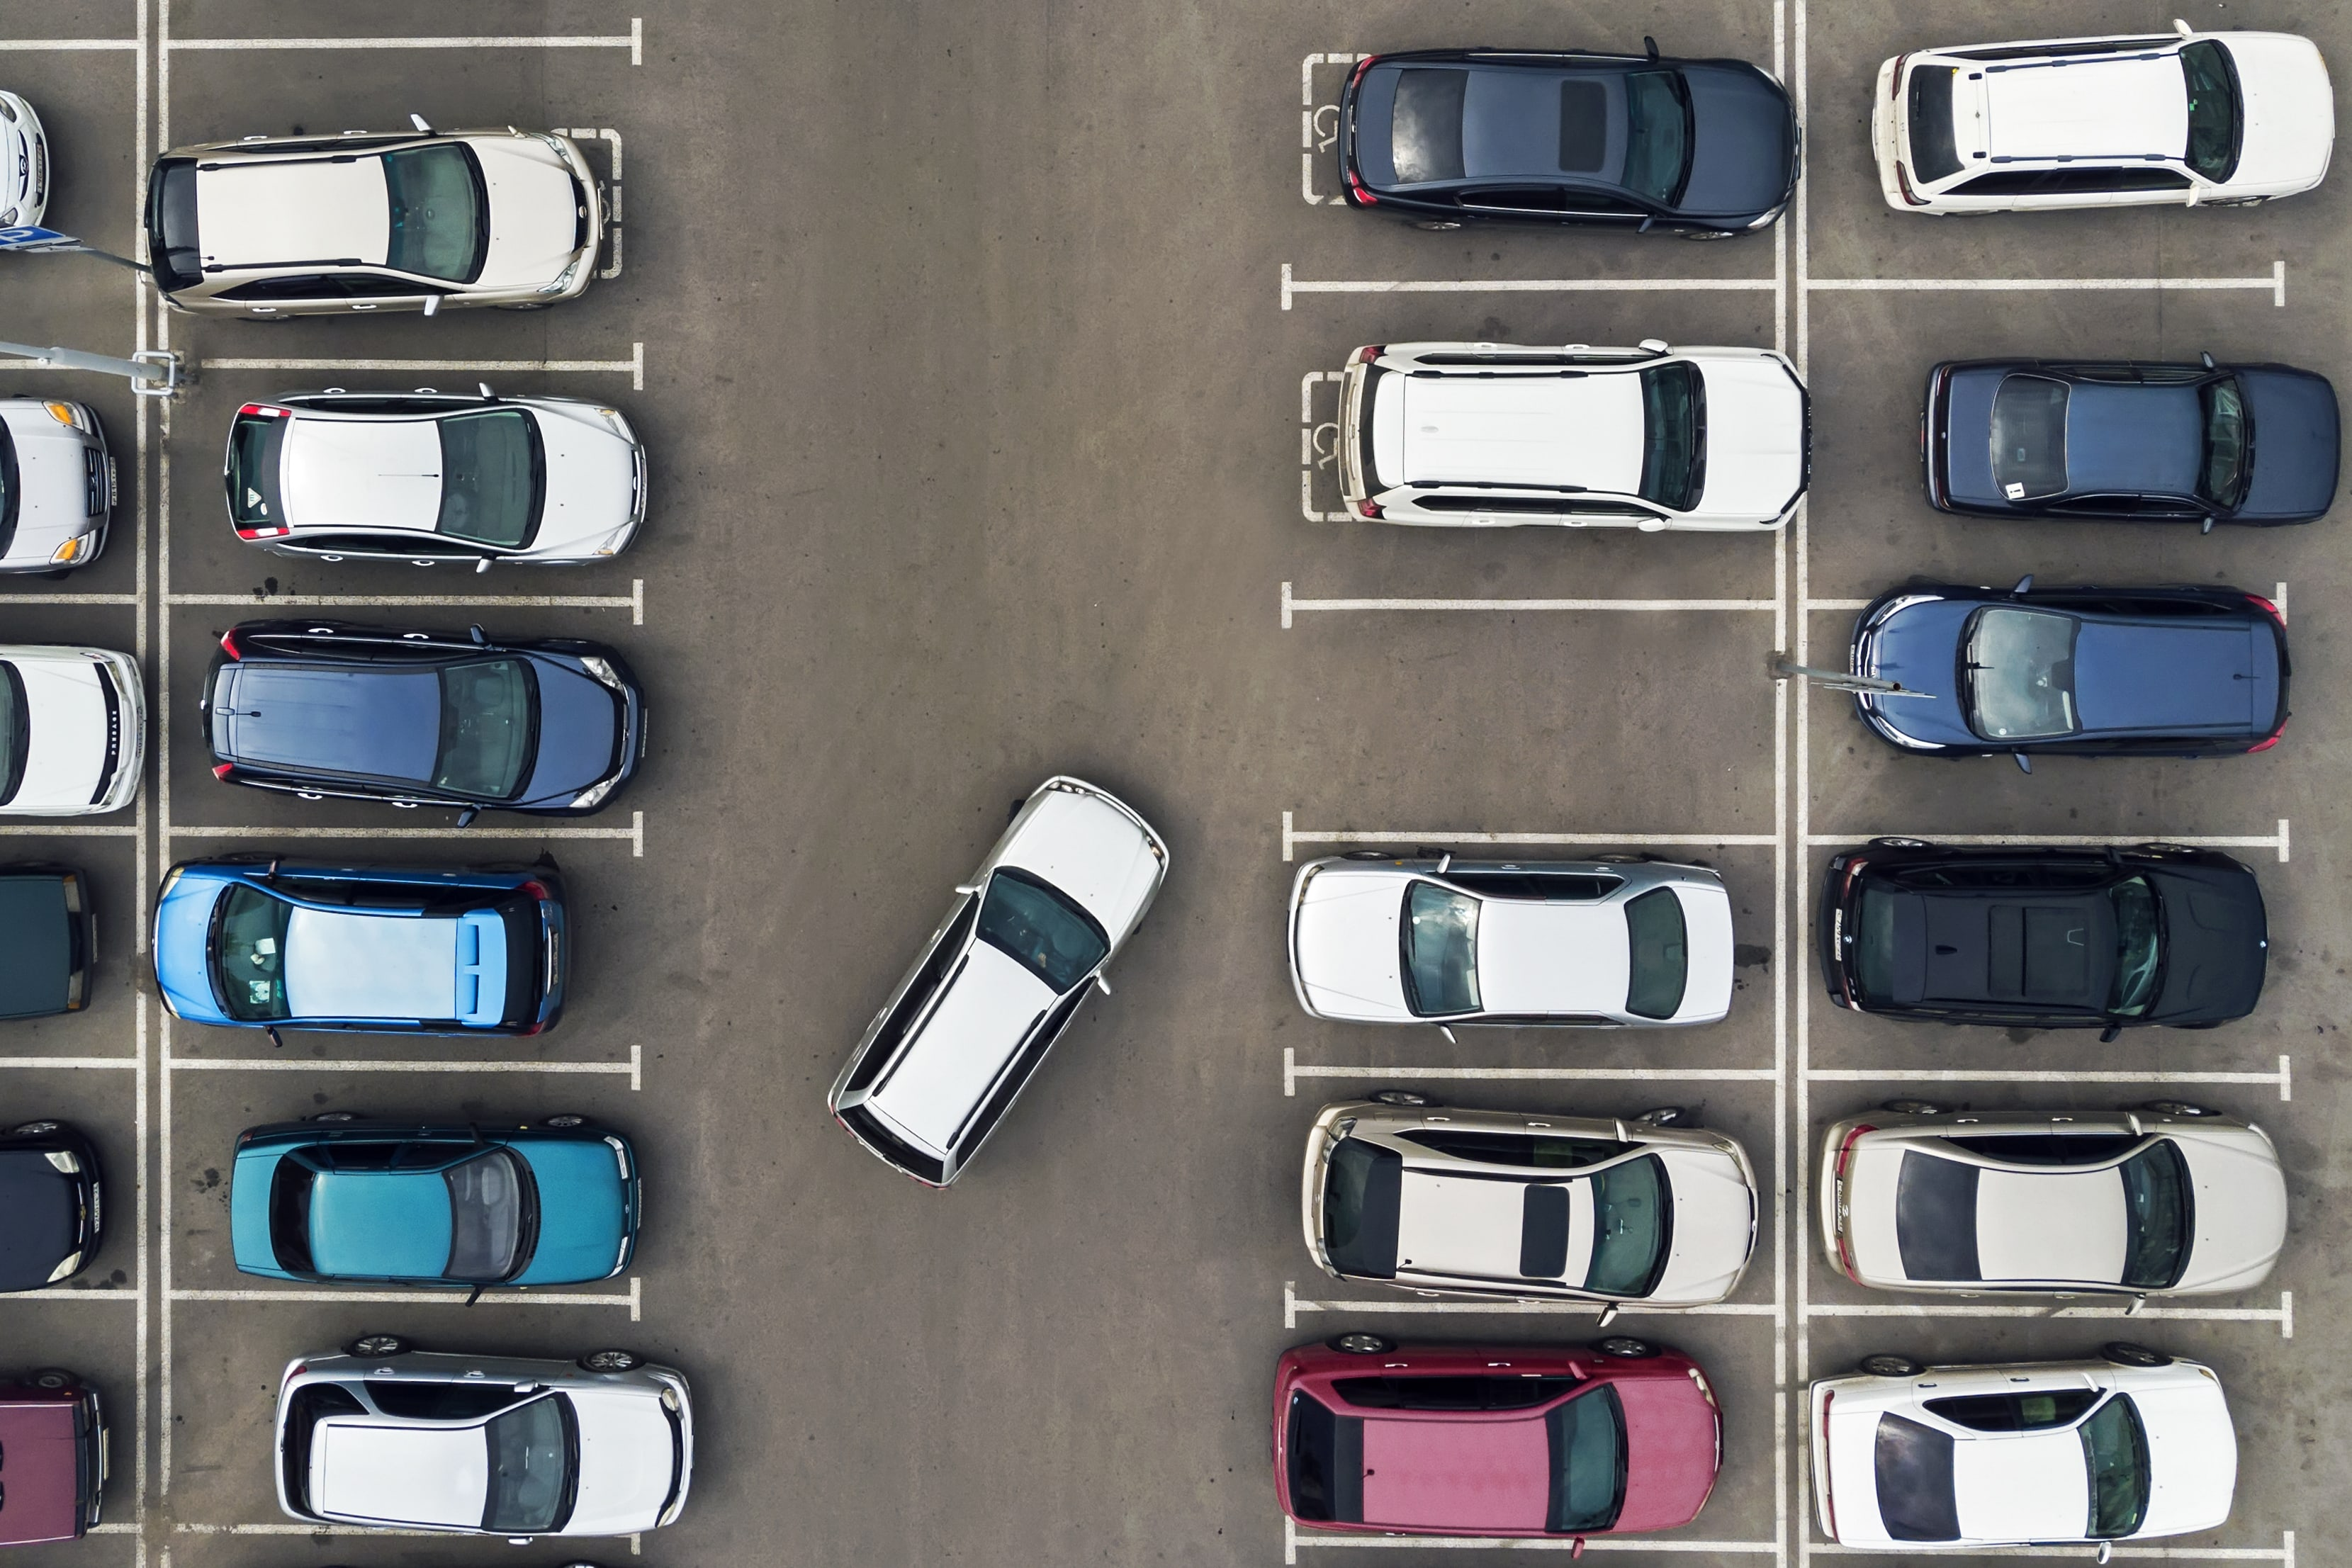 12 Parking Lot Safety Tips